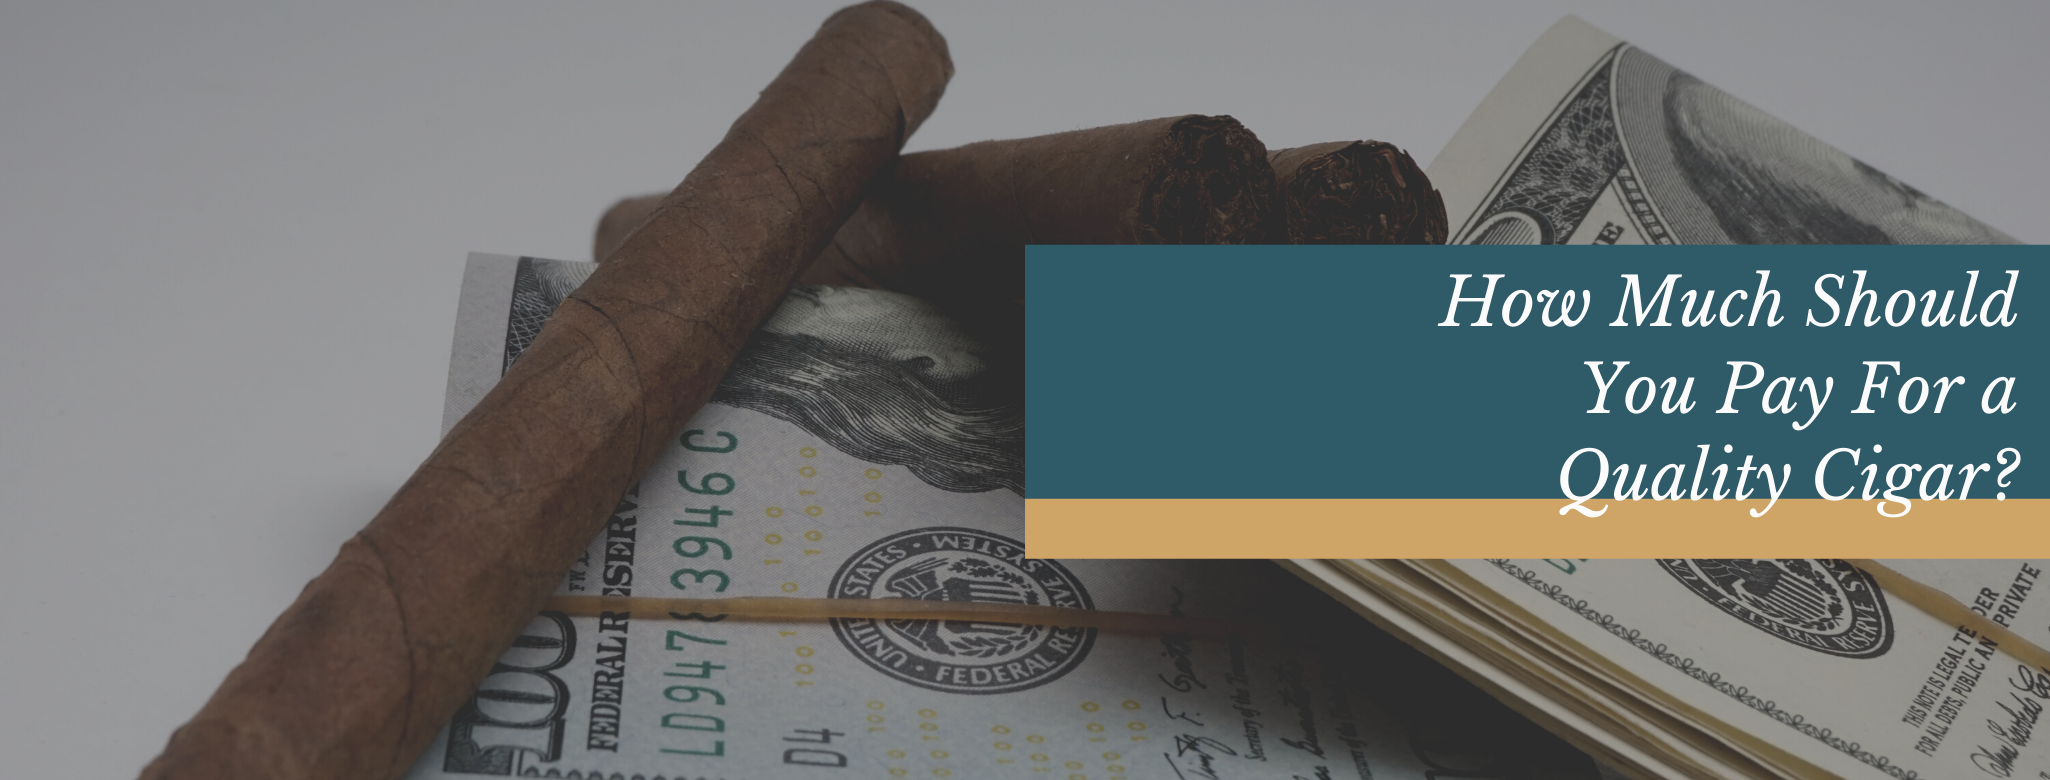 Reads: How much should you pay for a quality cigar?